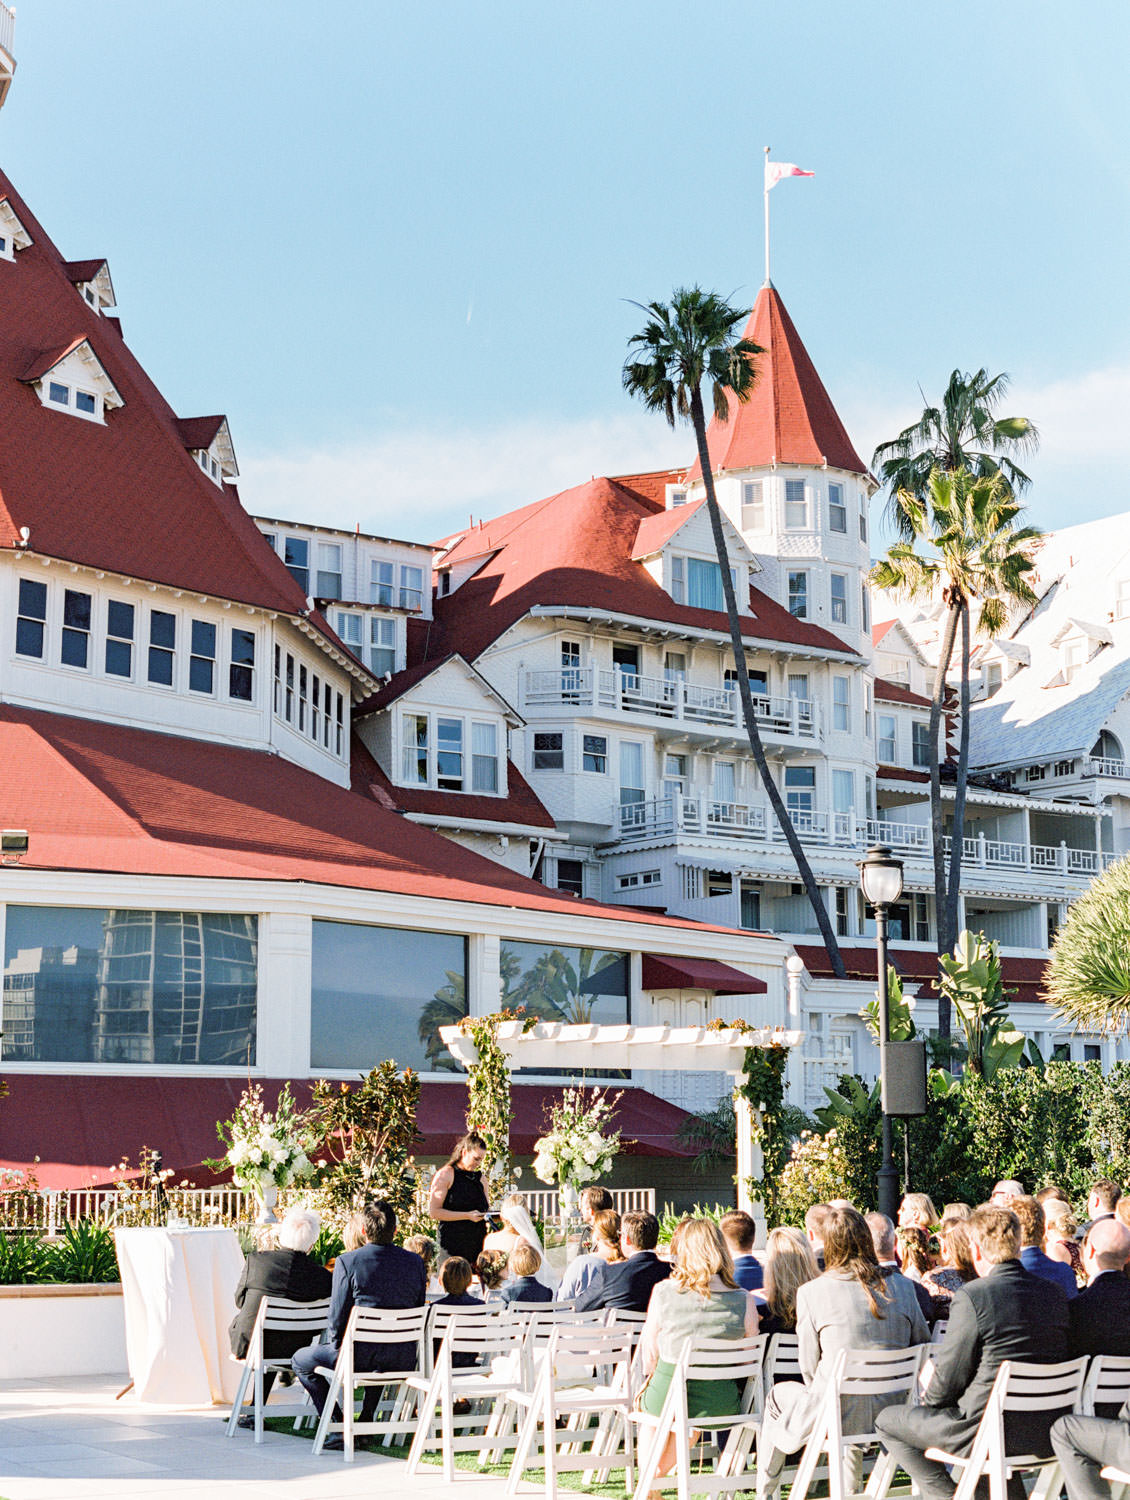 Ceremony with a view of the iconic hotel Del red roofs. Hotel Del Coronado wedding on film by Cavin Elizabeth.